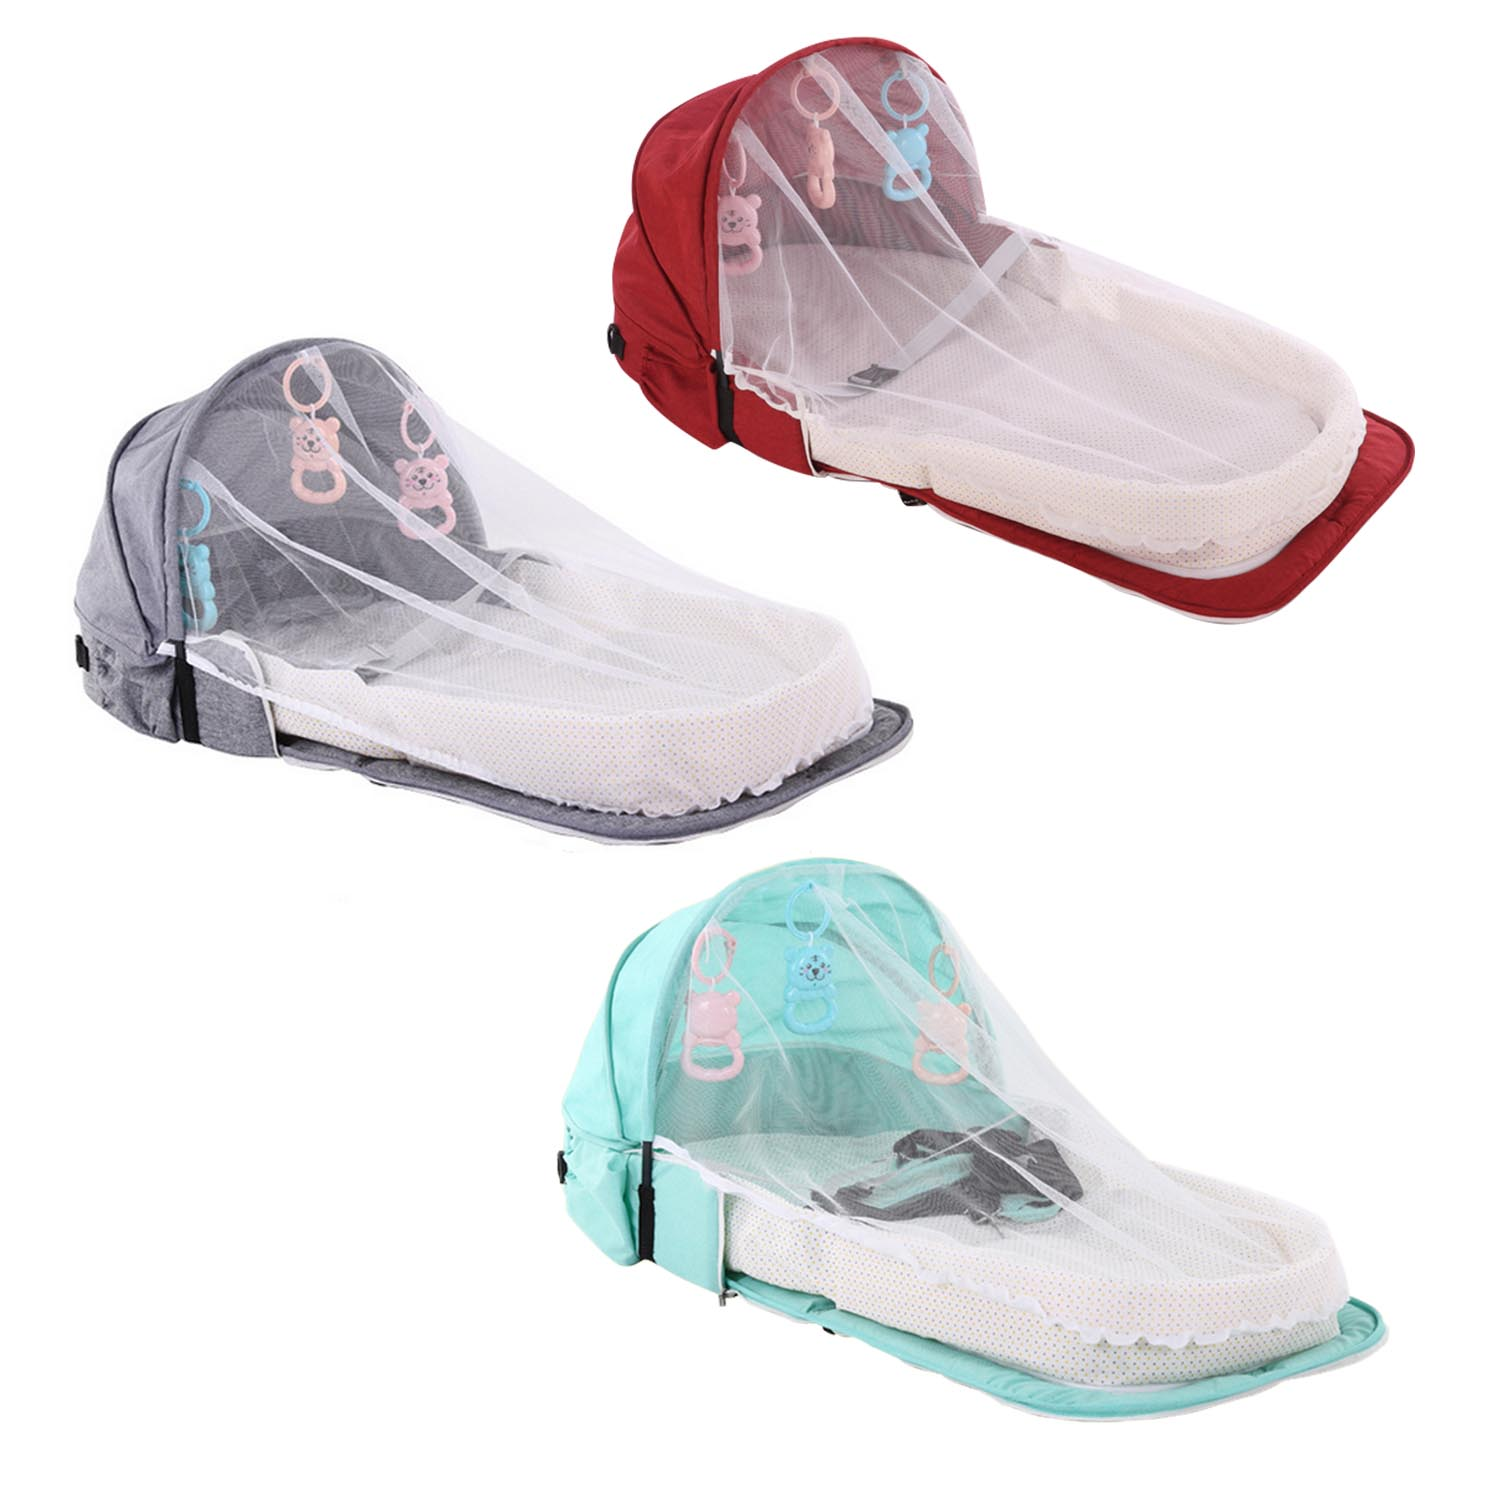 Portable Foldable Baby Sleeping Bed Crib Basket With Toys Mosquito Net For 0-1 Years Old Infants Home Travel Breathable Baby Bed